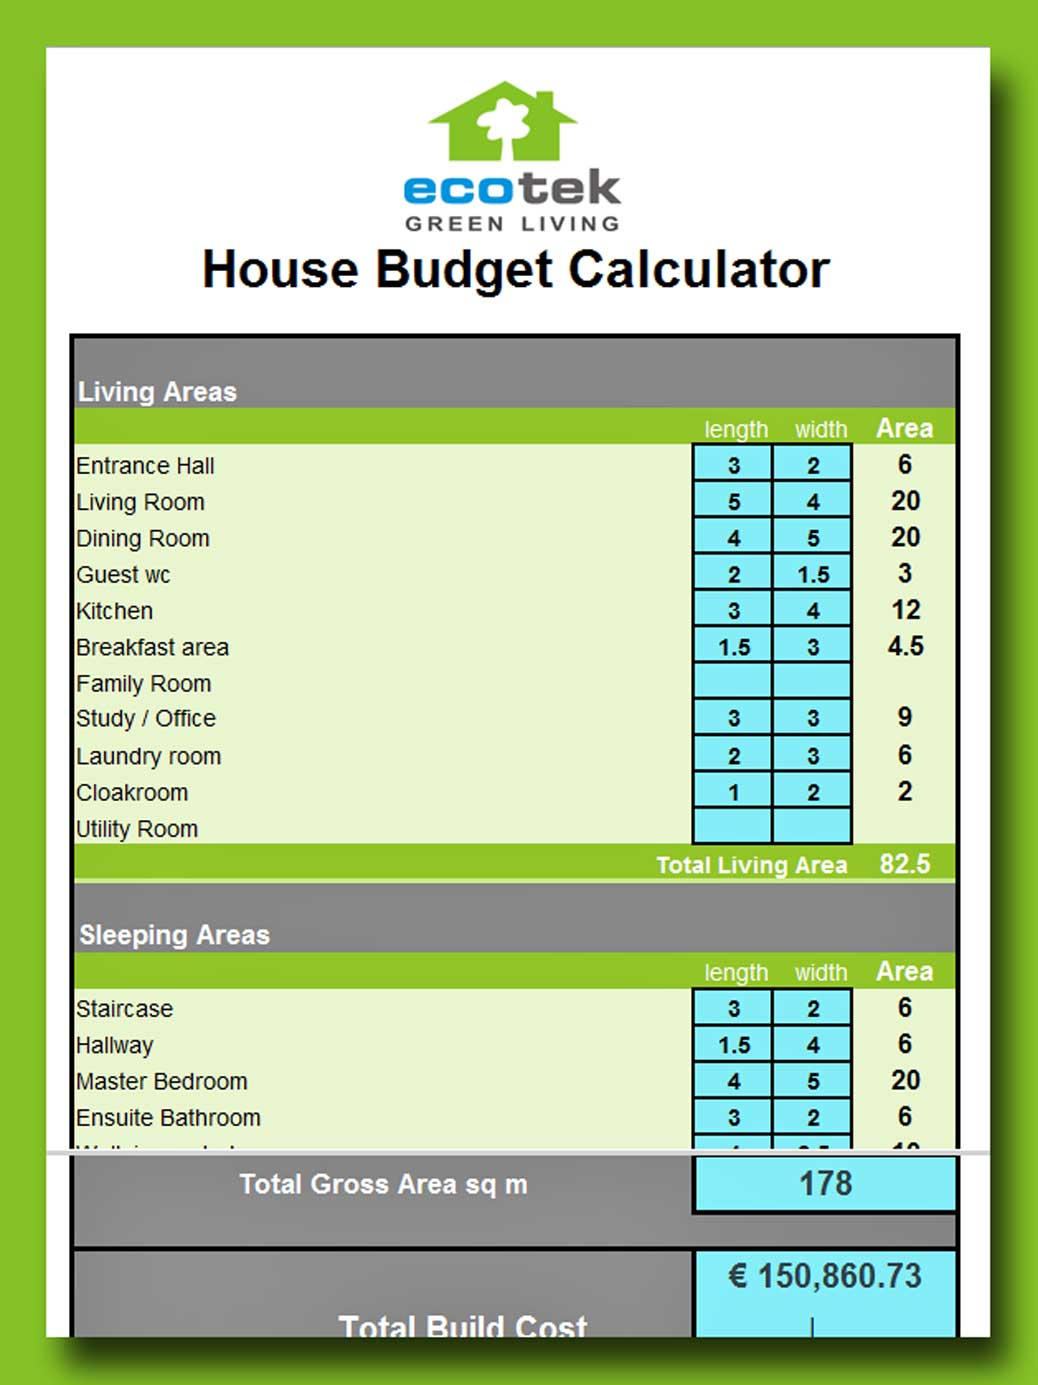 Marvelous A Spreadhseet Image Showing A Calculation Of House Budgetting